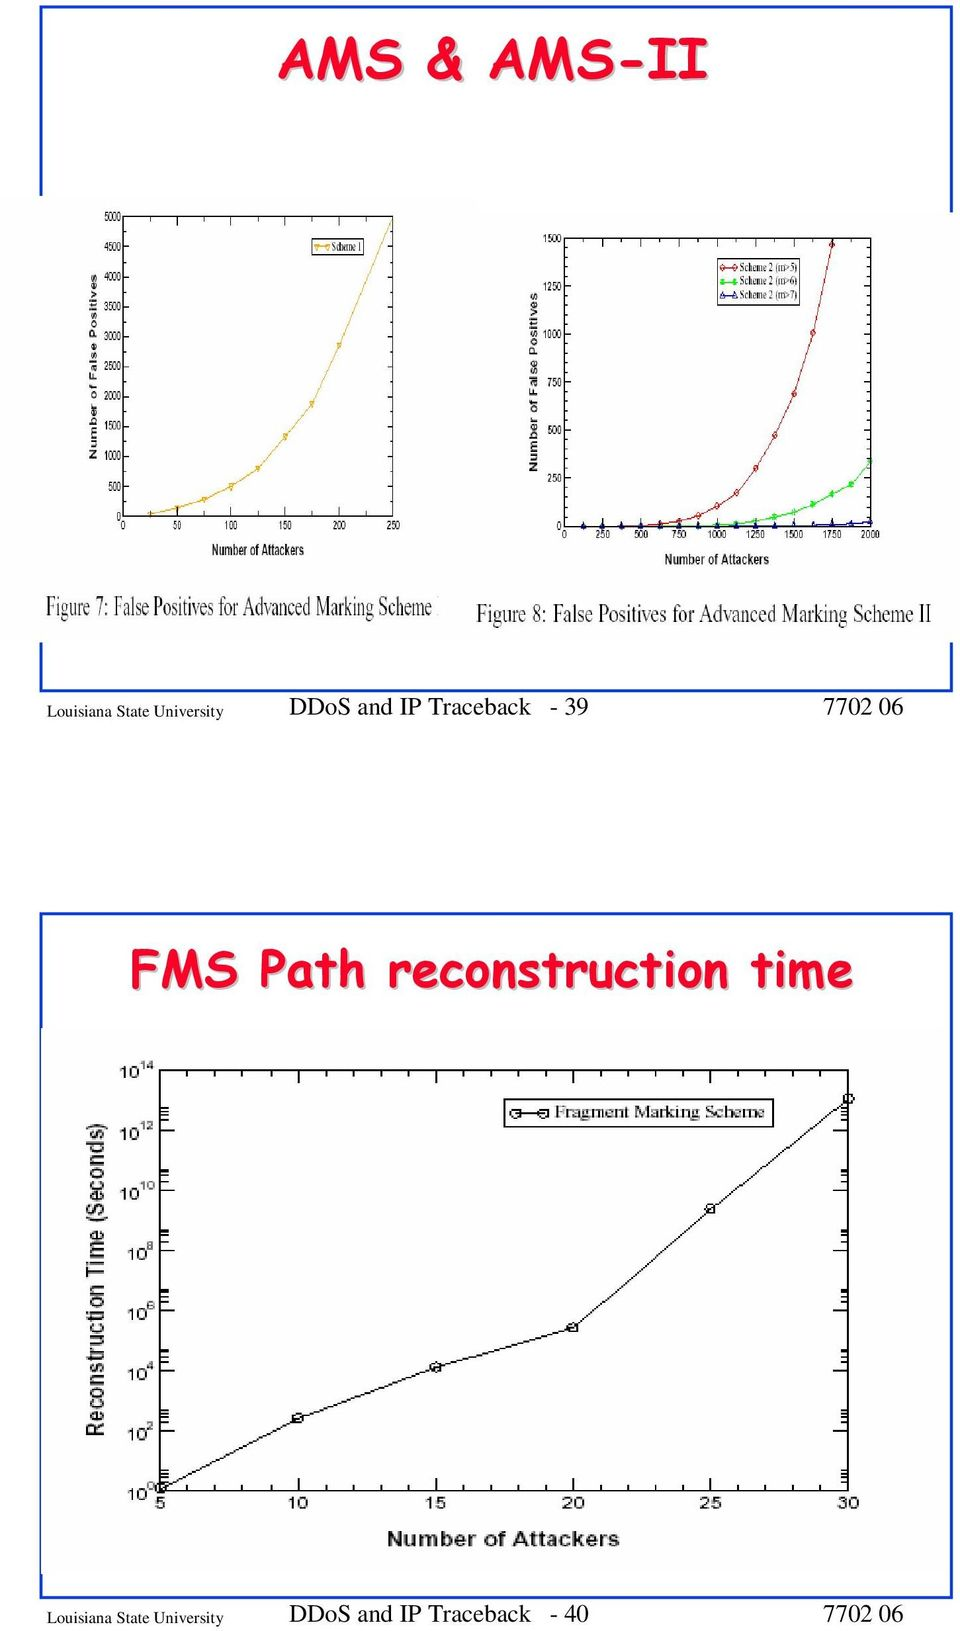 FMS Path reconstruction time